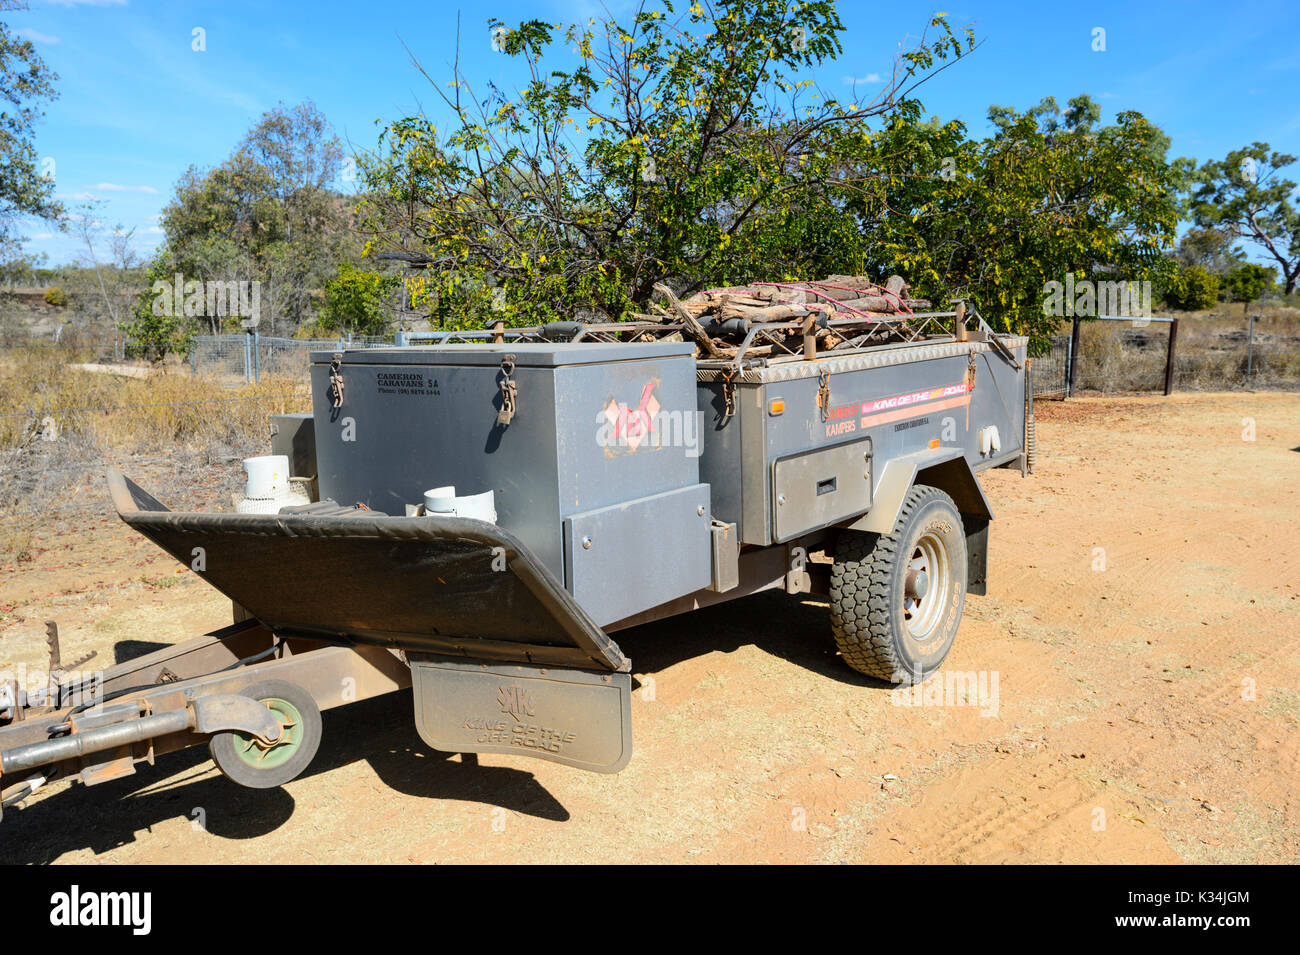 Off-road Kimberley Kampers camper trailer, known as KK, Far North Queensland, FNQ, QLD, Australia - Stock Image